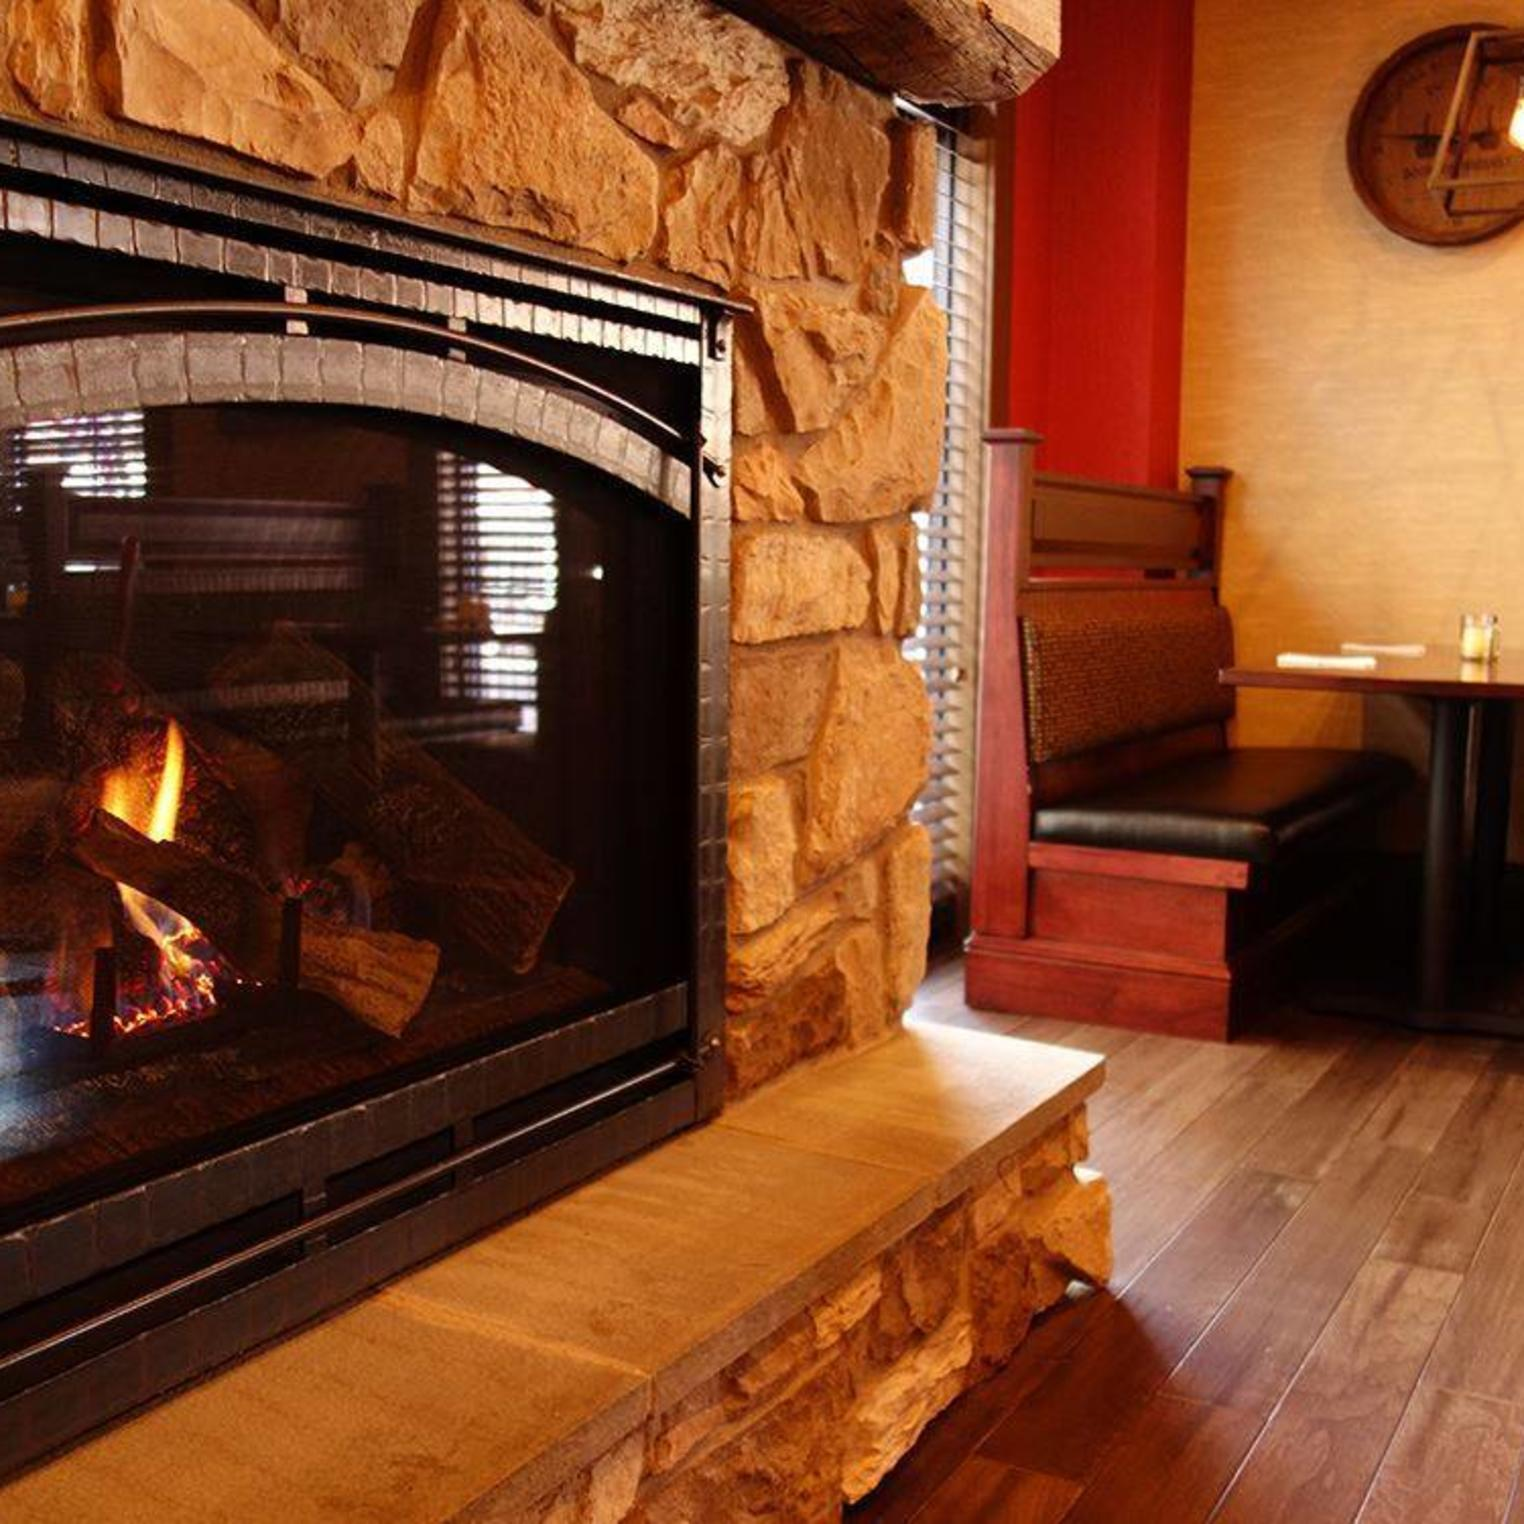 Our fireplace creates a cozy atmosphere for our guests.